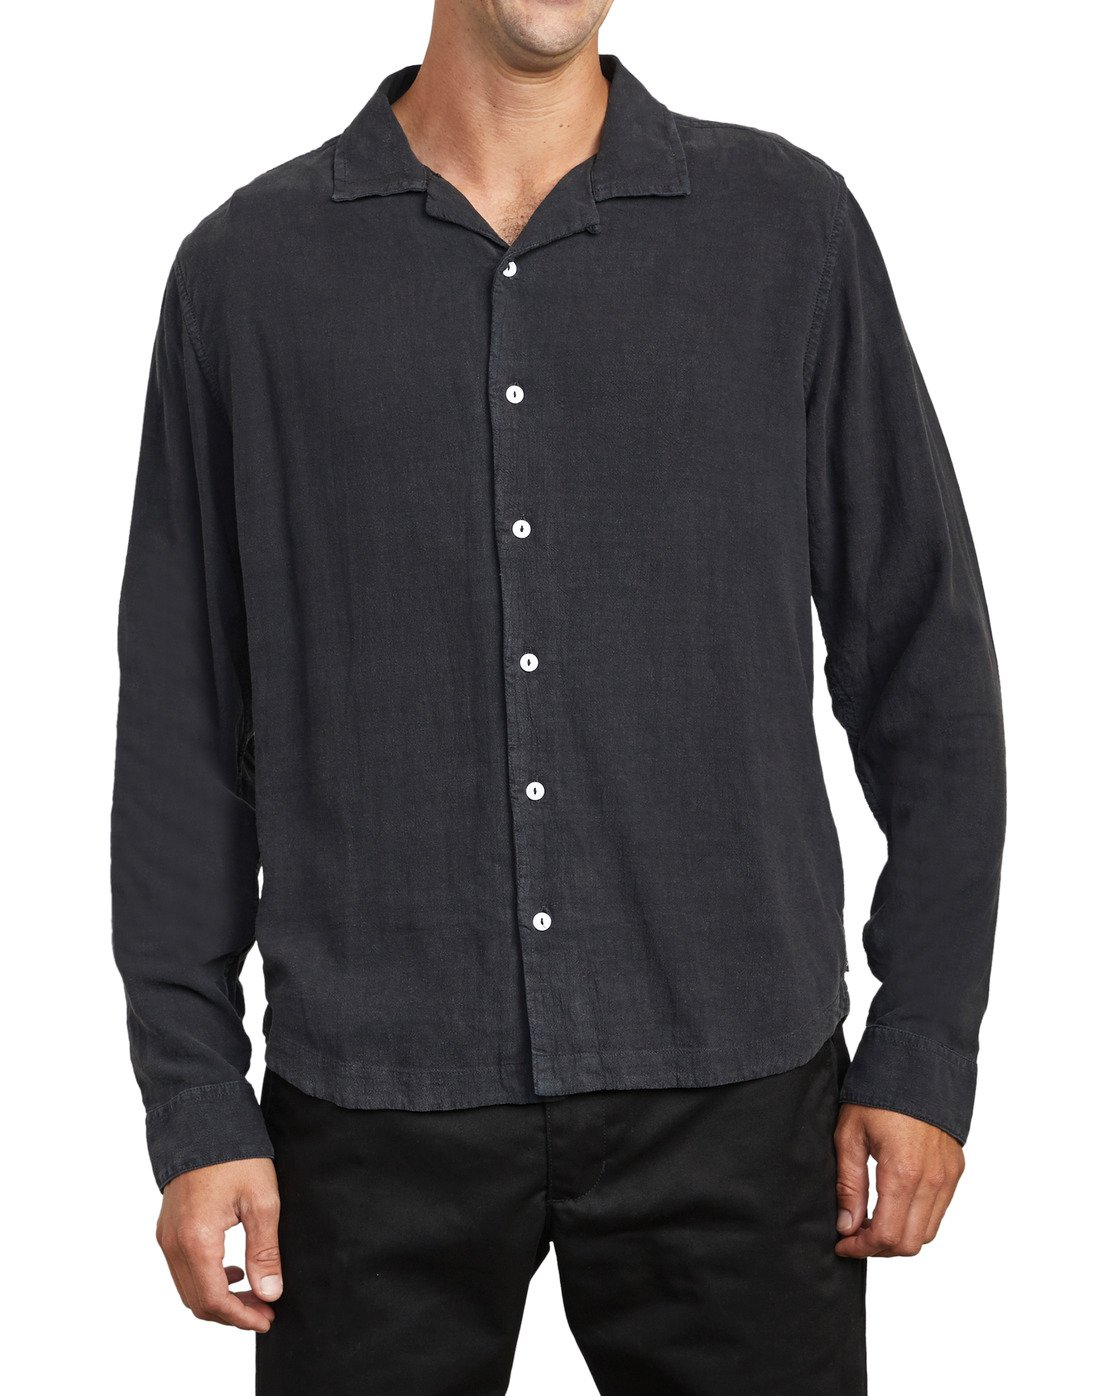 0 BEAT LONG SLEEVE SHIRT Black M5513RBL RVCA